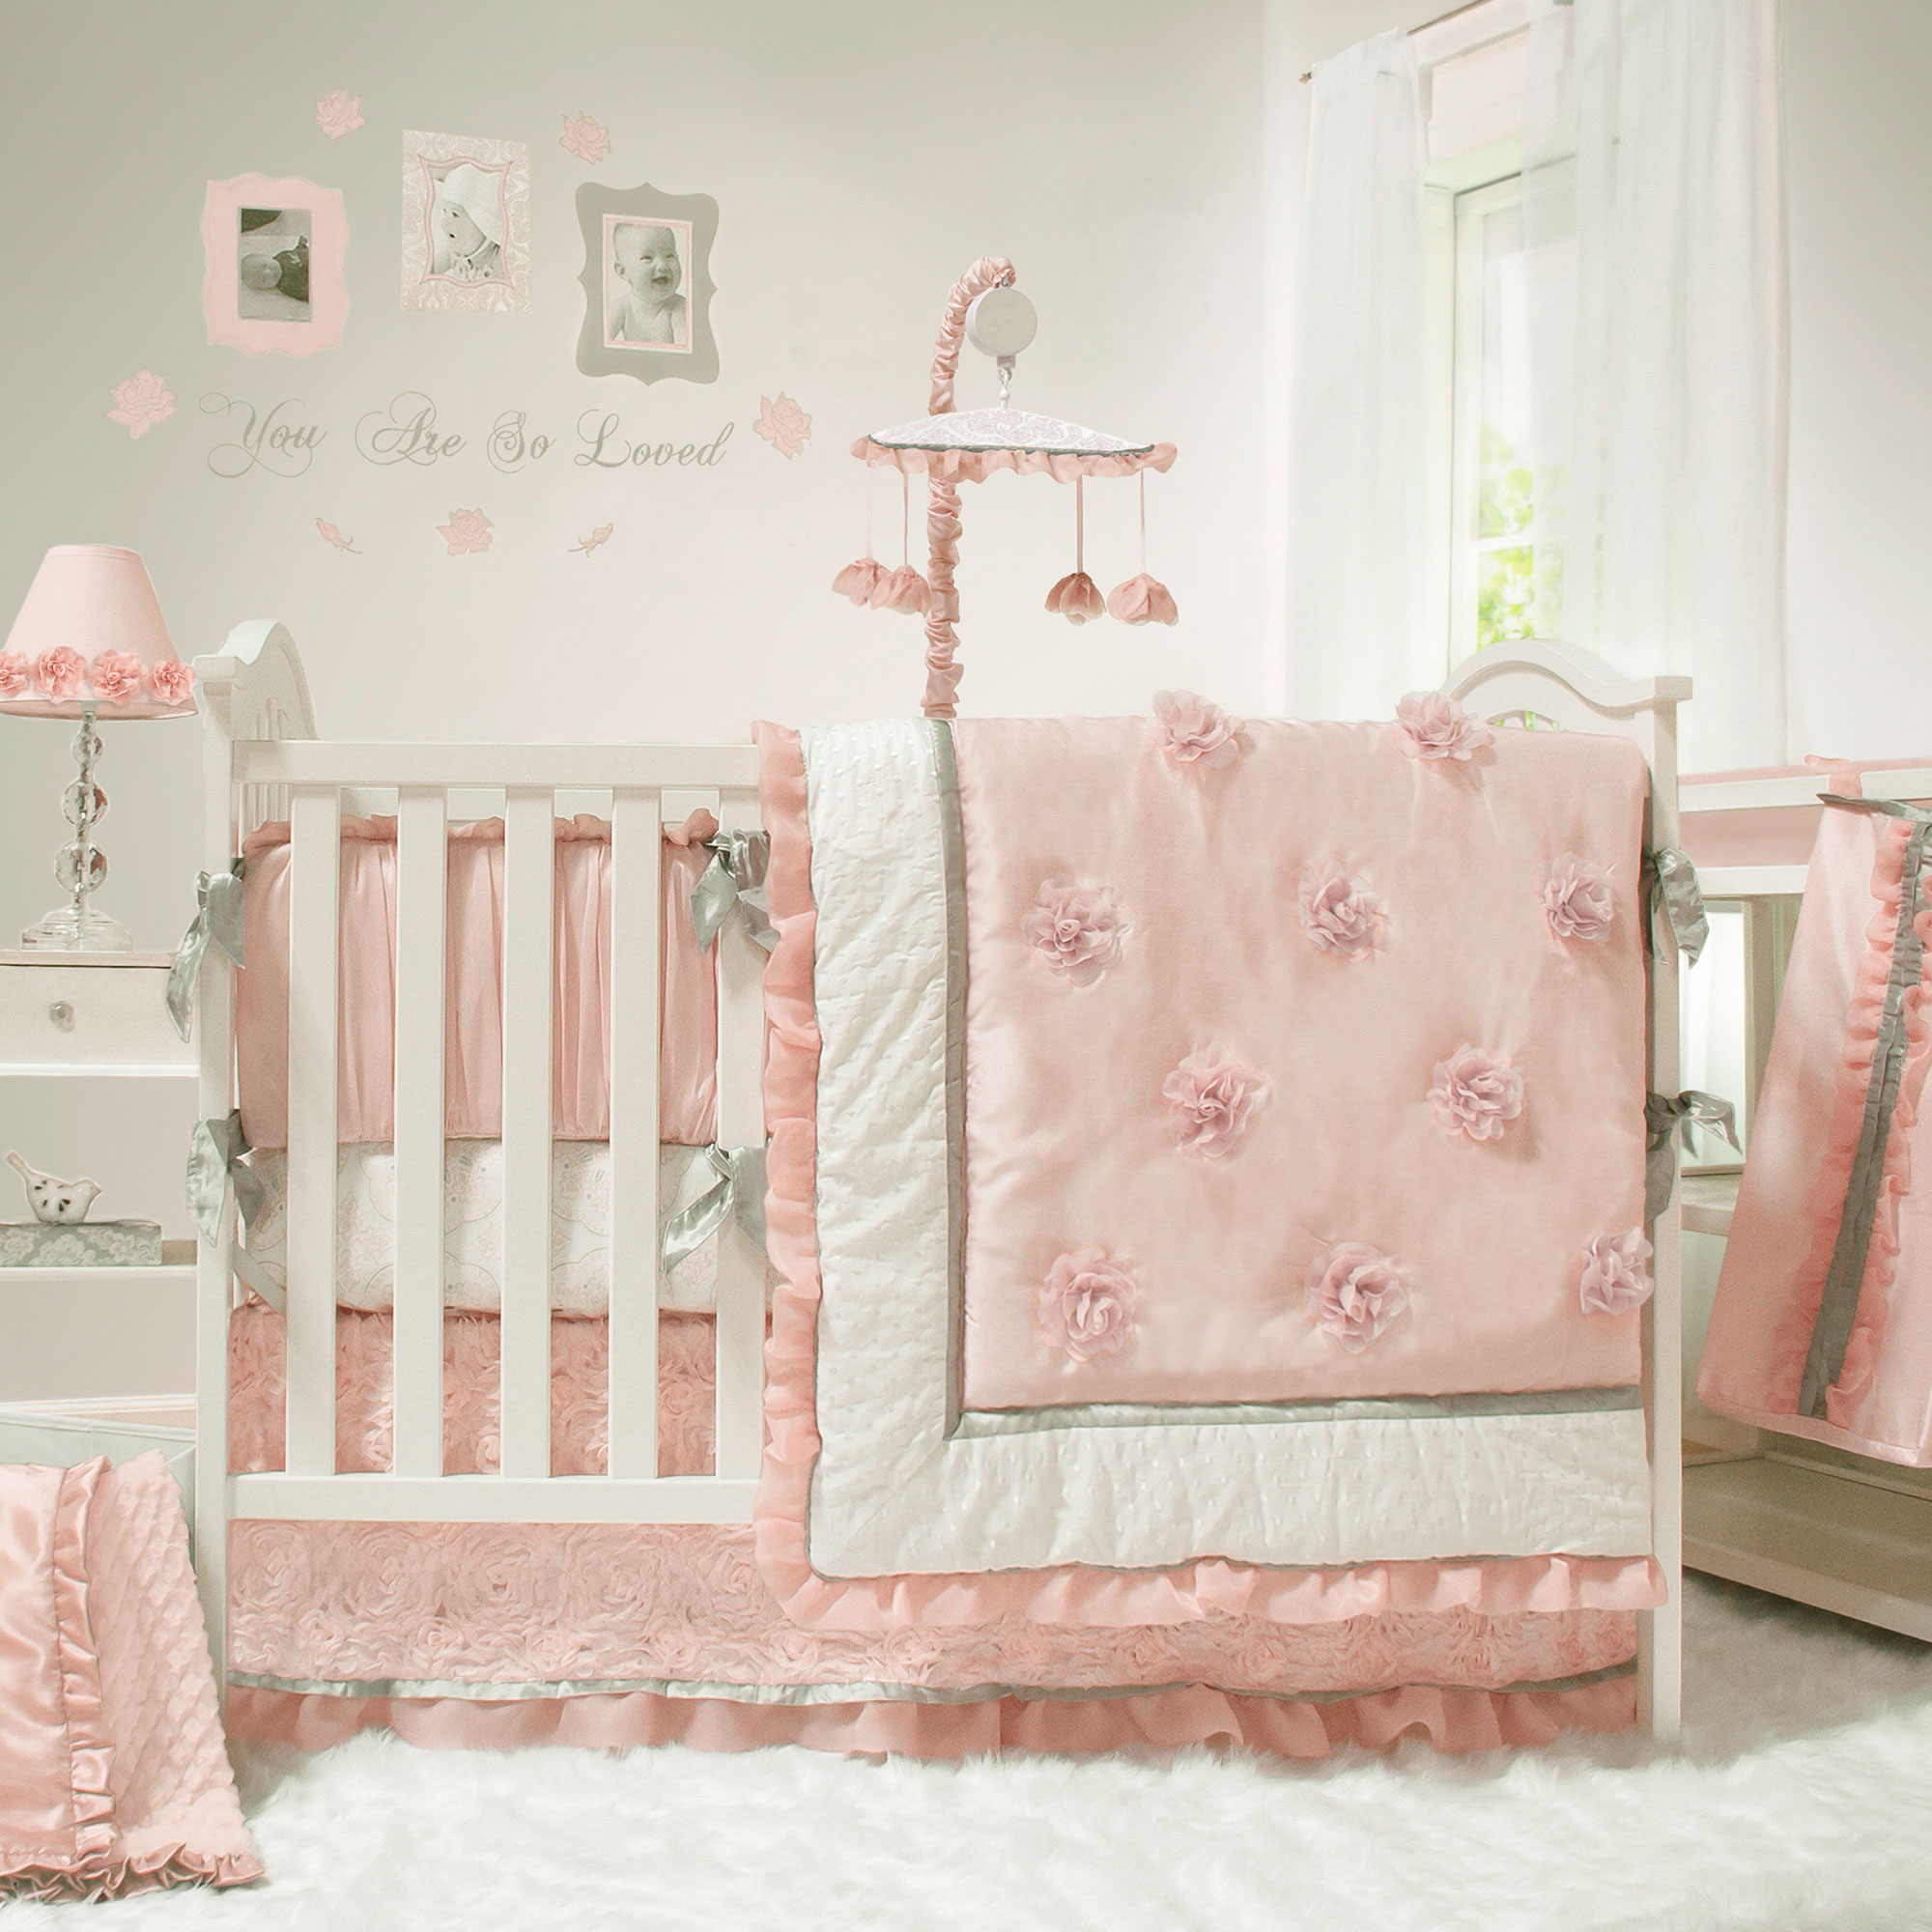 The Peanut Shell Baby Girl Crib Bedding Set - Pink and White - Arianna 4  Piece Set - Traveller Location